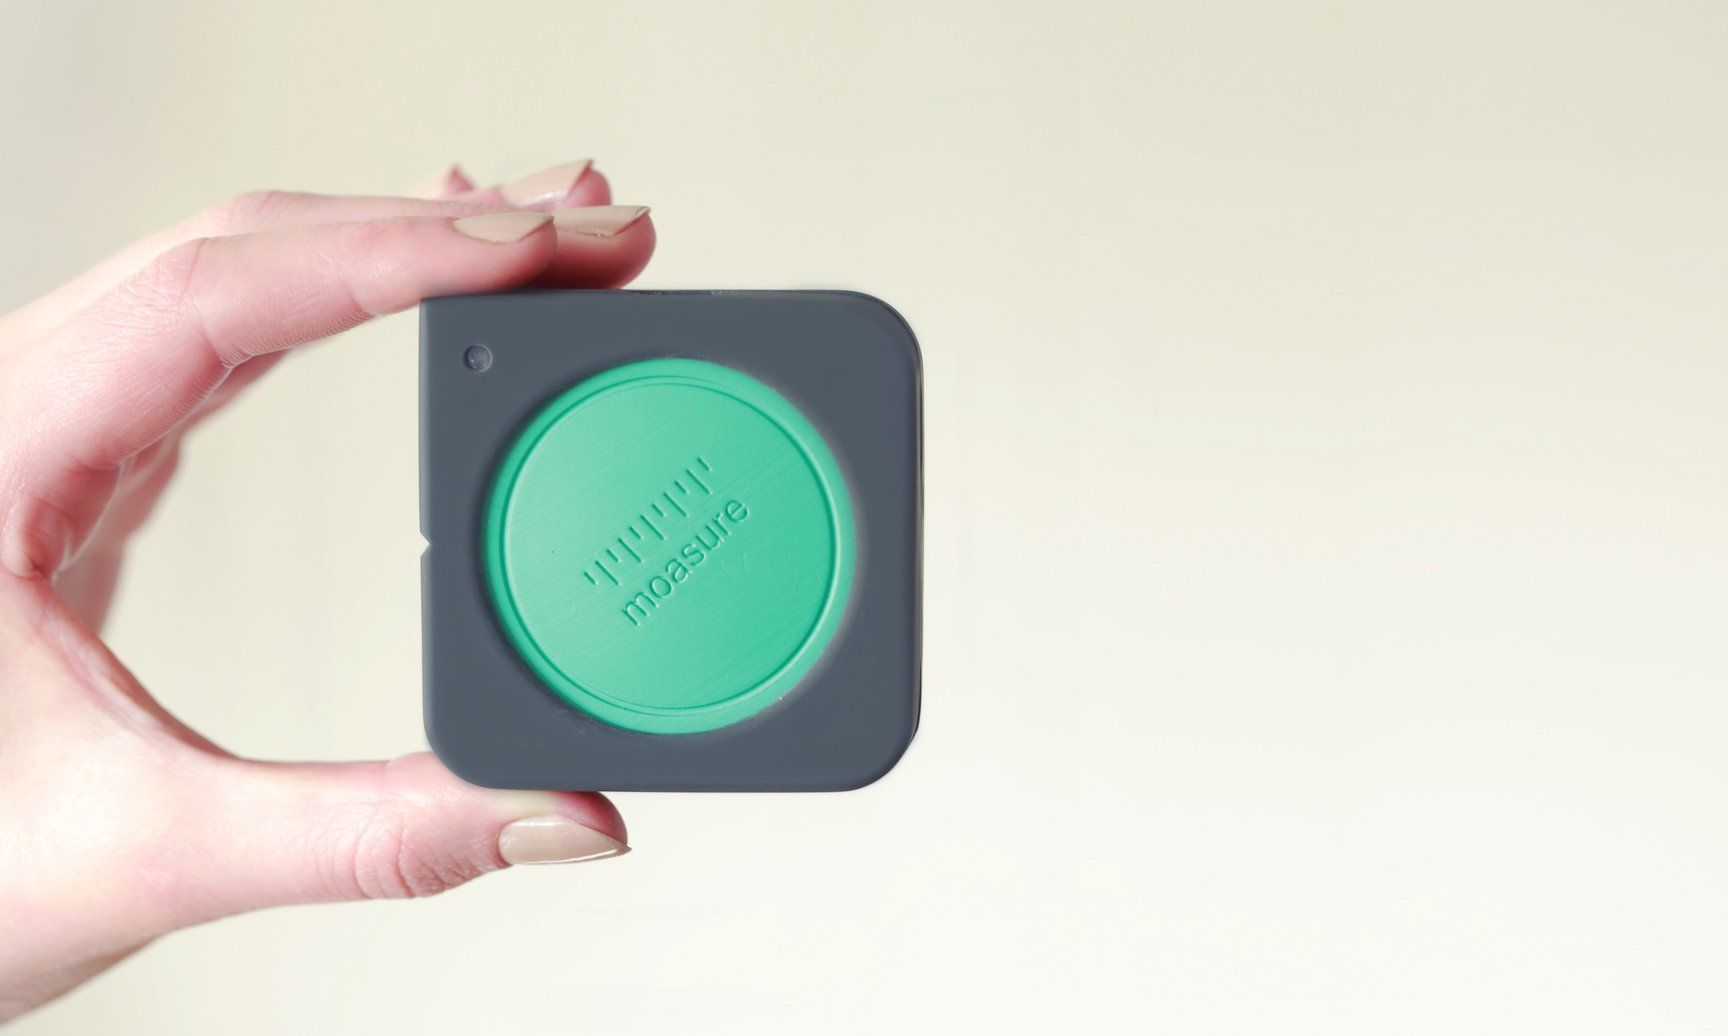 Moasure Is A Revolutionary New Measuring Technology That